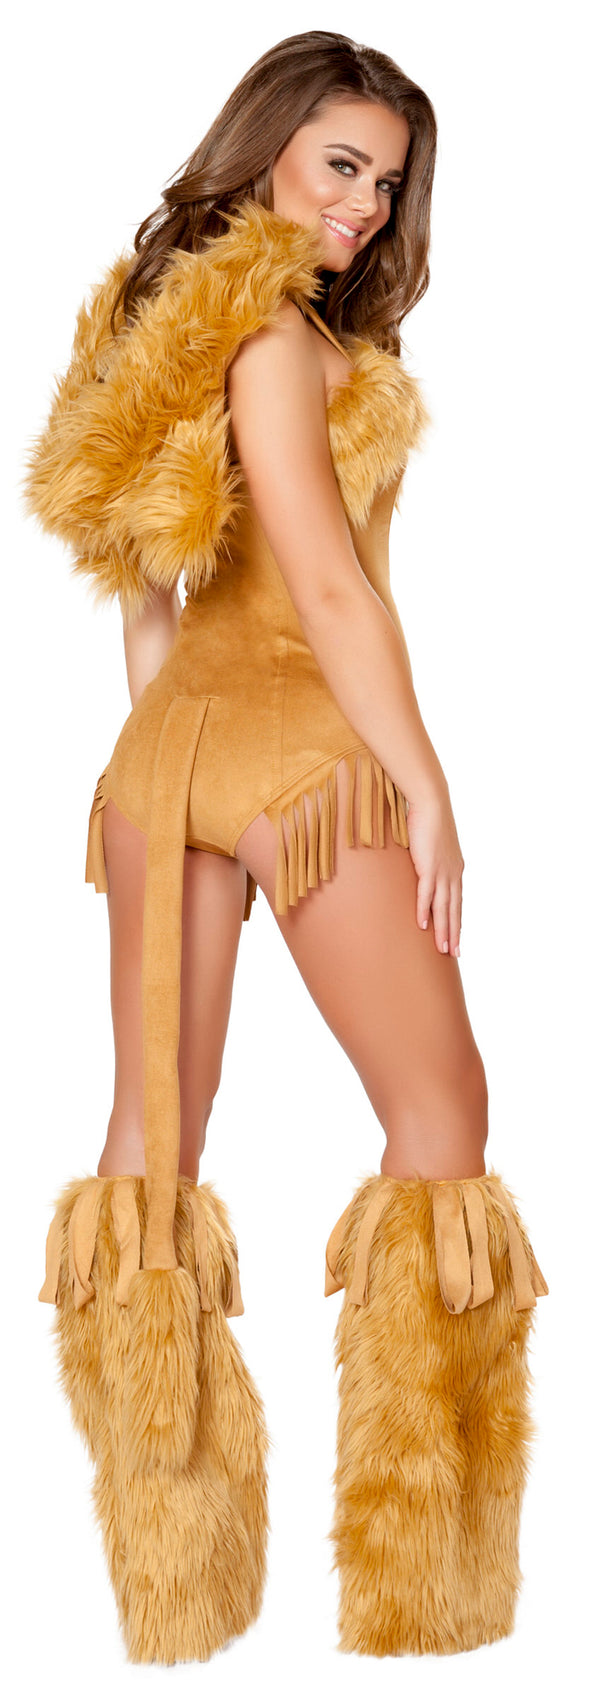 RM-4710 Vicious Lioness Costume back